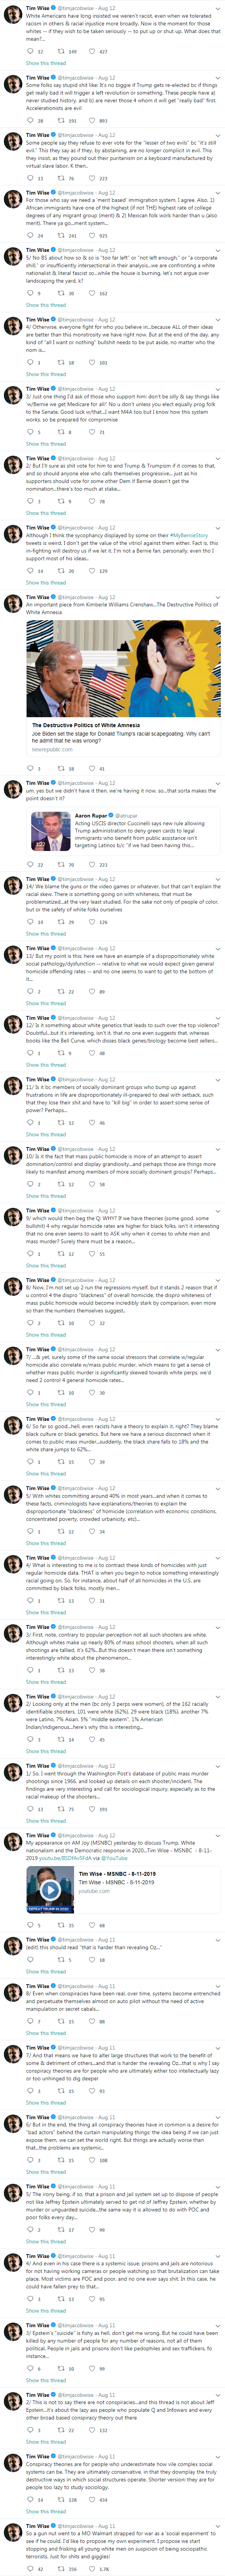 Tim_Wise_Twitter_8-14-2018_1145PM_03.png